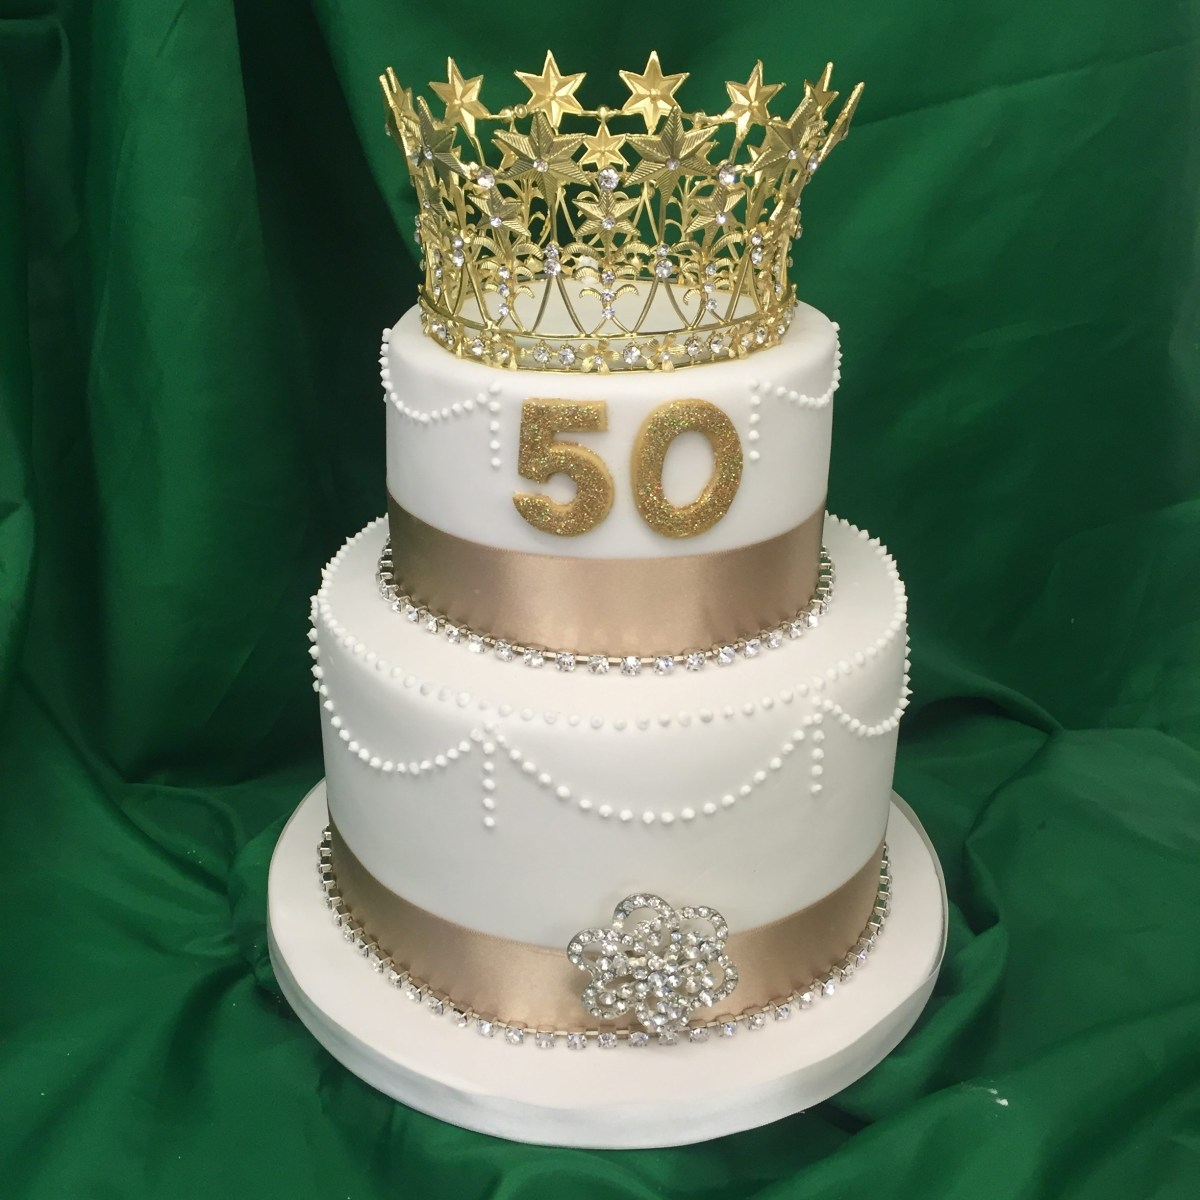 Phenomenal Cakes For 50Th Birthday 2 Tier 50Th Birthday Cake M Rays Bakery Funny Birthday Cards Online Alyptdamsfinfo